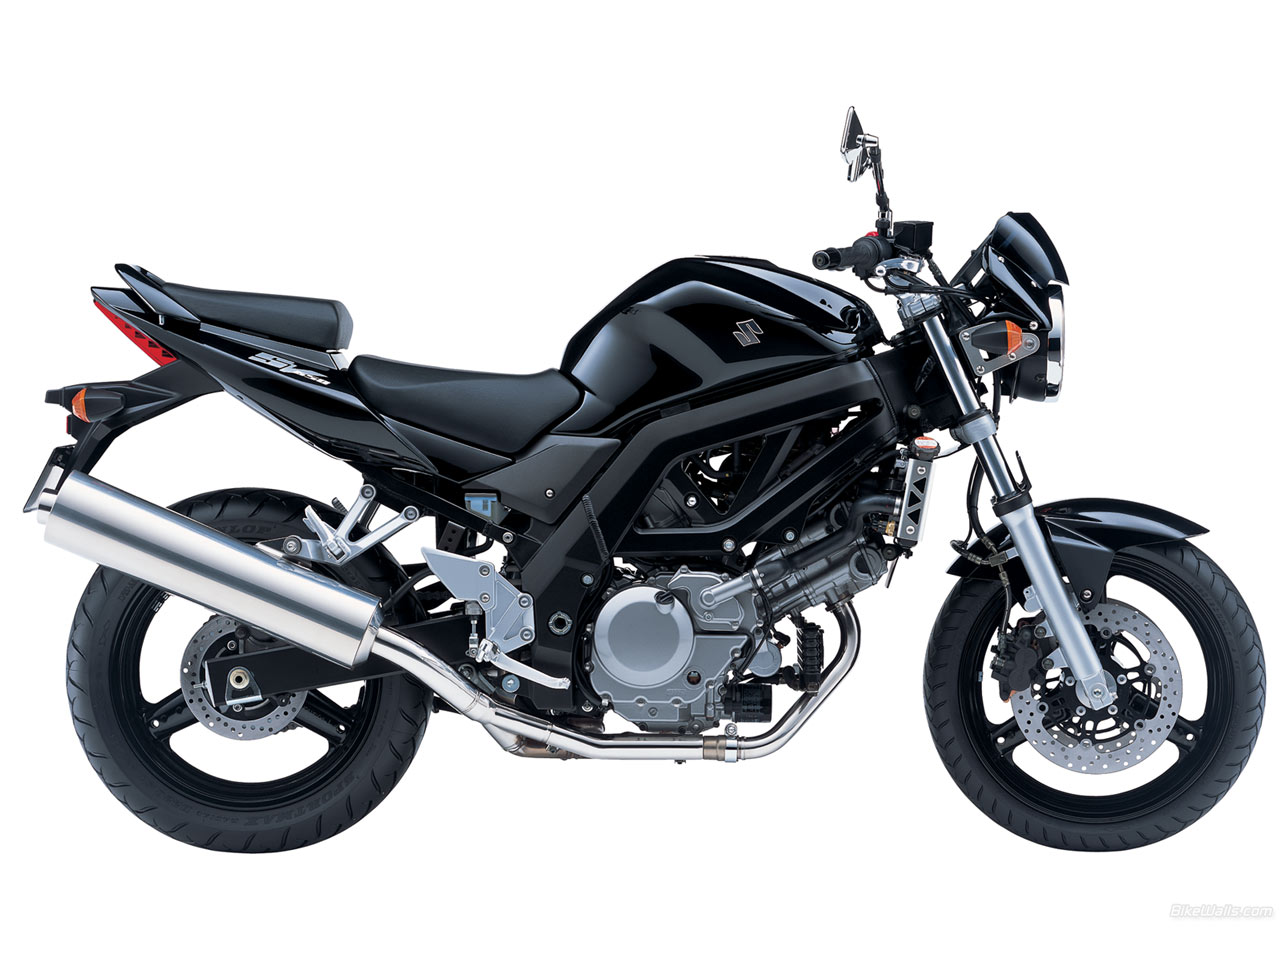 Suzuki sv650 photo - 3